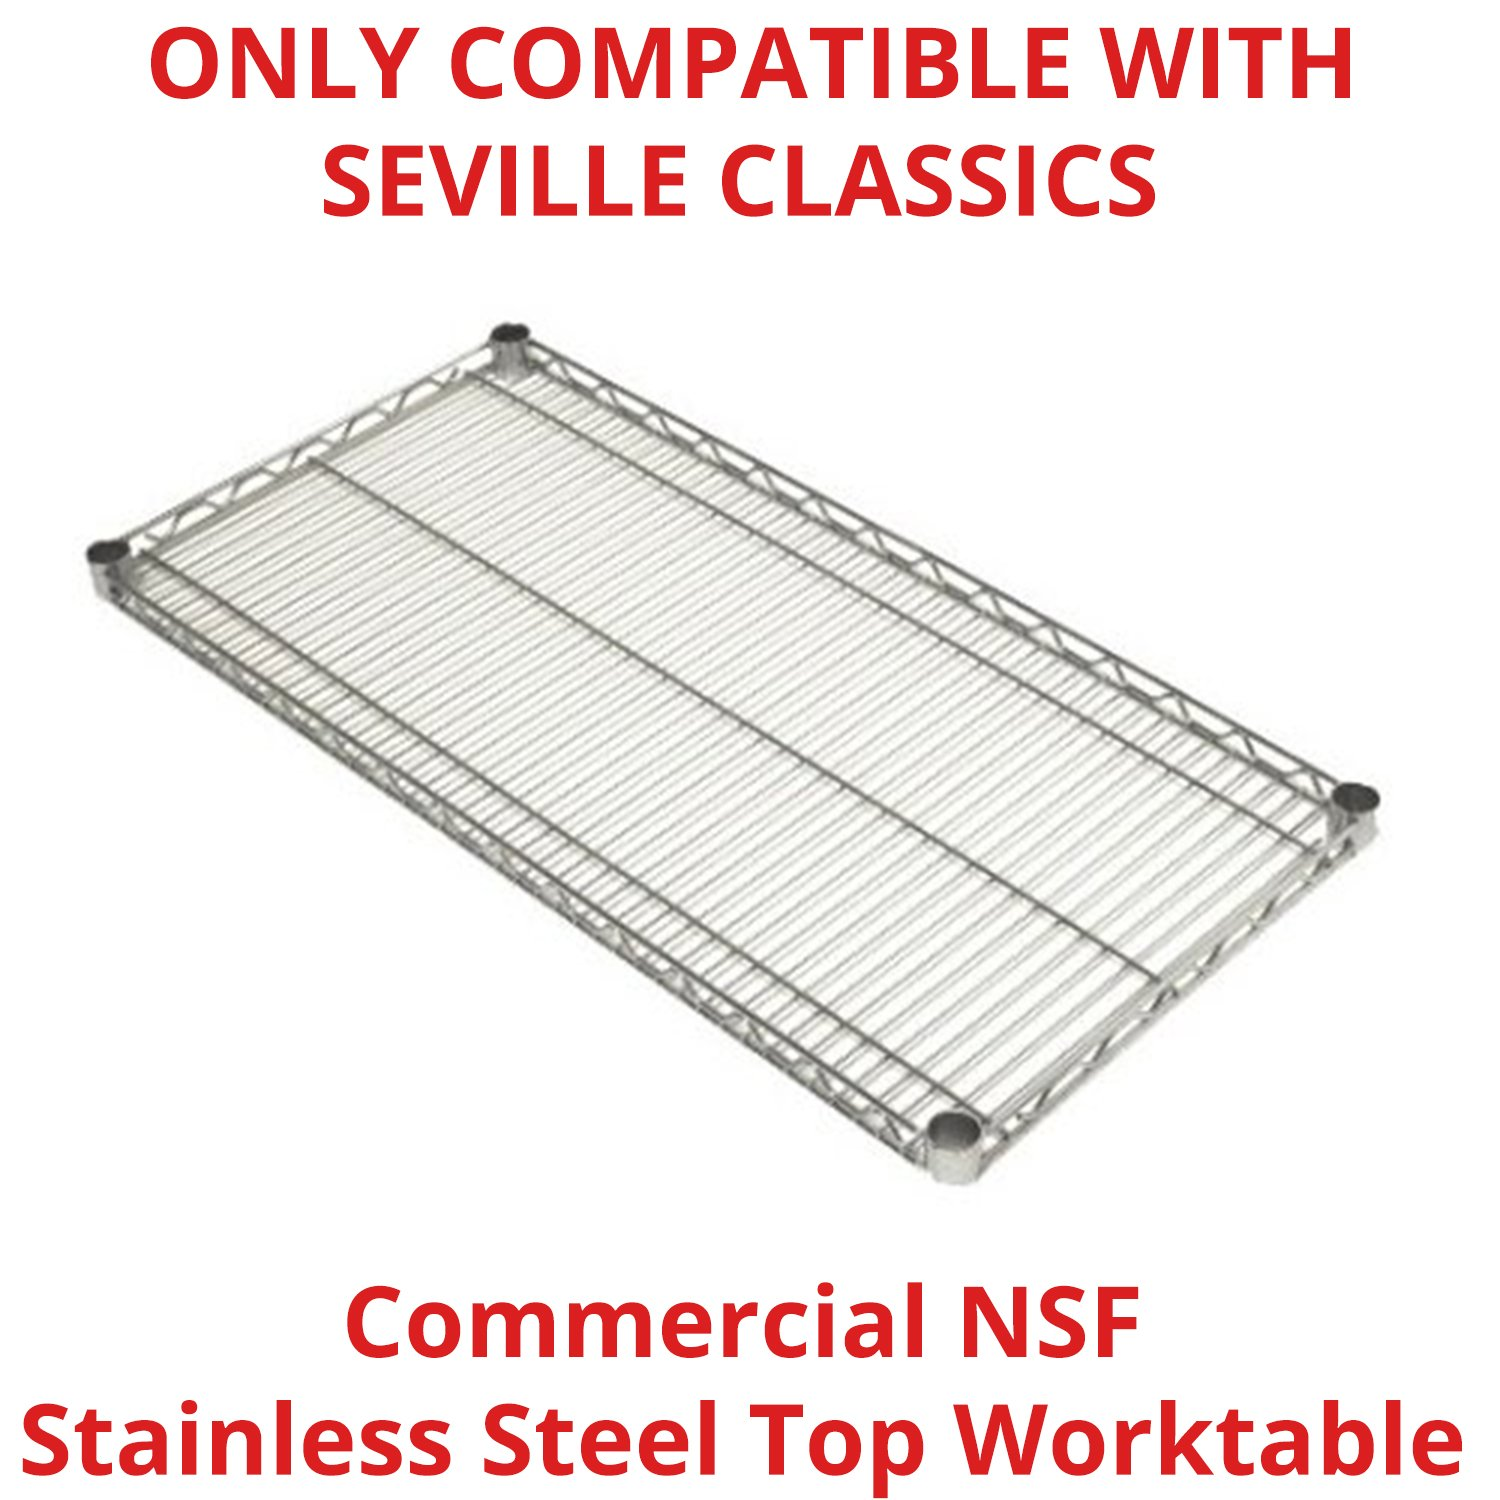 Seville Classics SHE18308SH Commercial NSF Stainless Steel Top Worktable Shelf, 18'' D x 48'' W x 1'' H